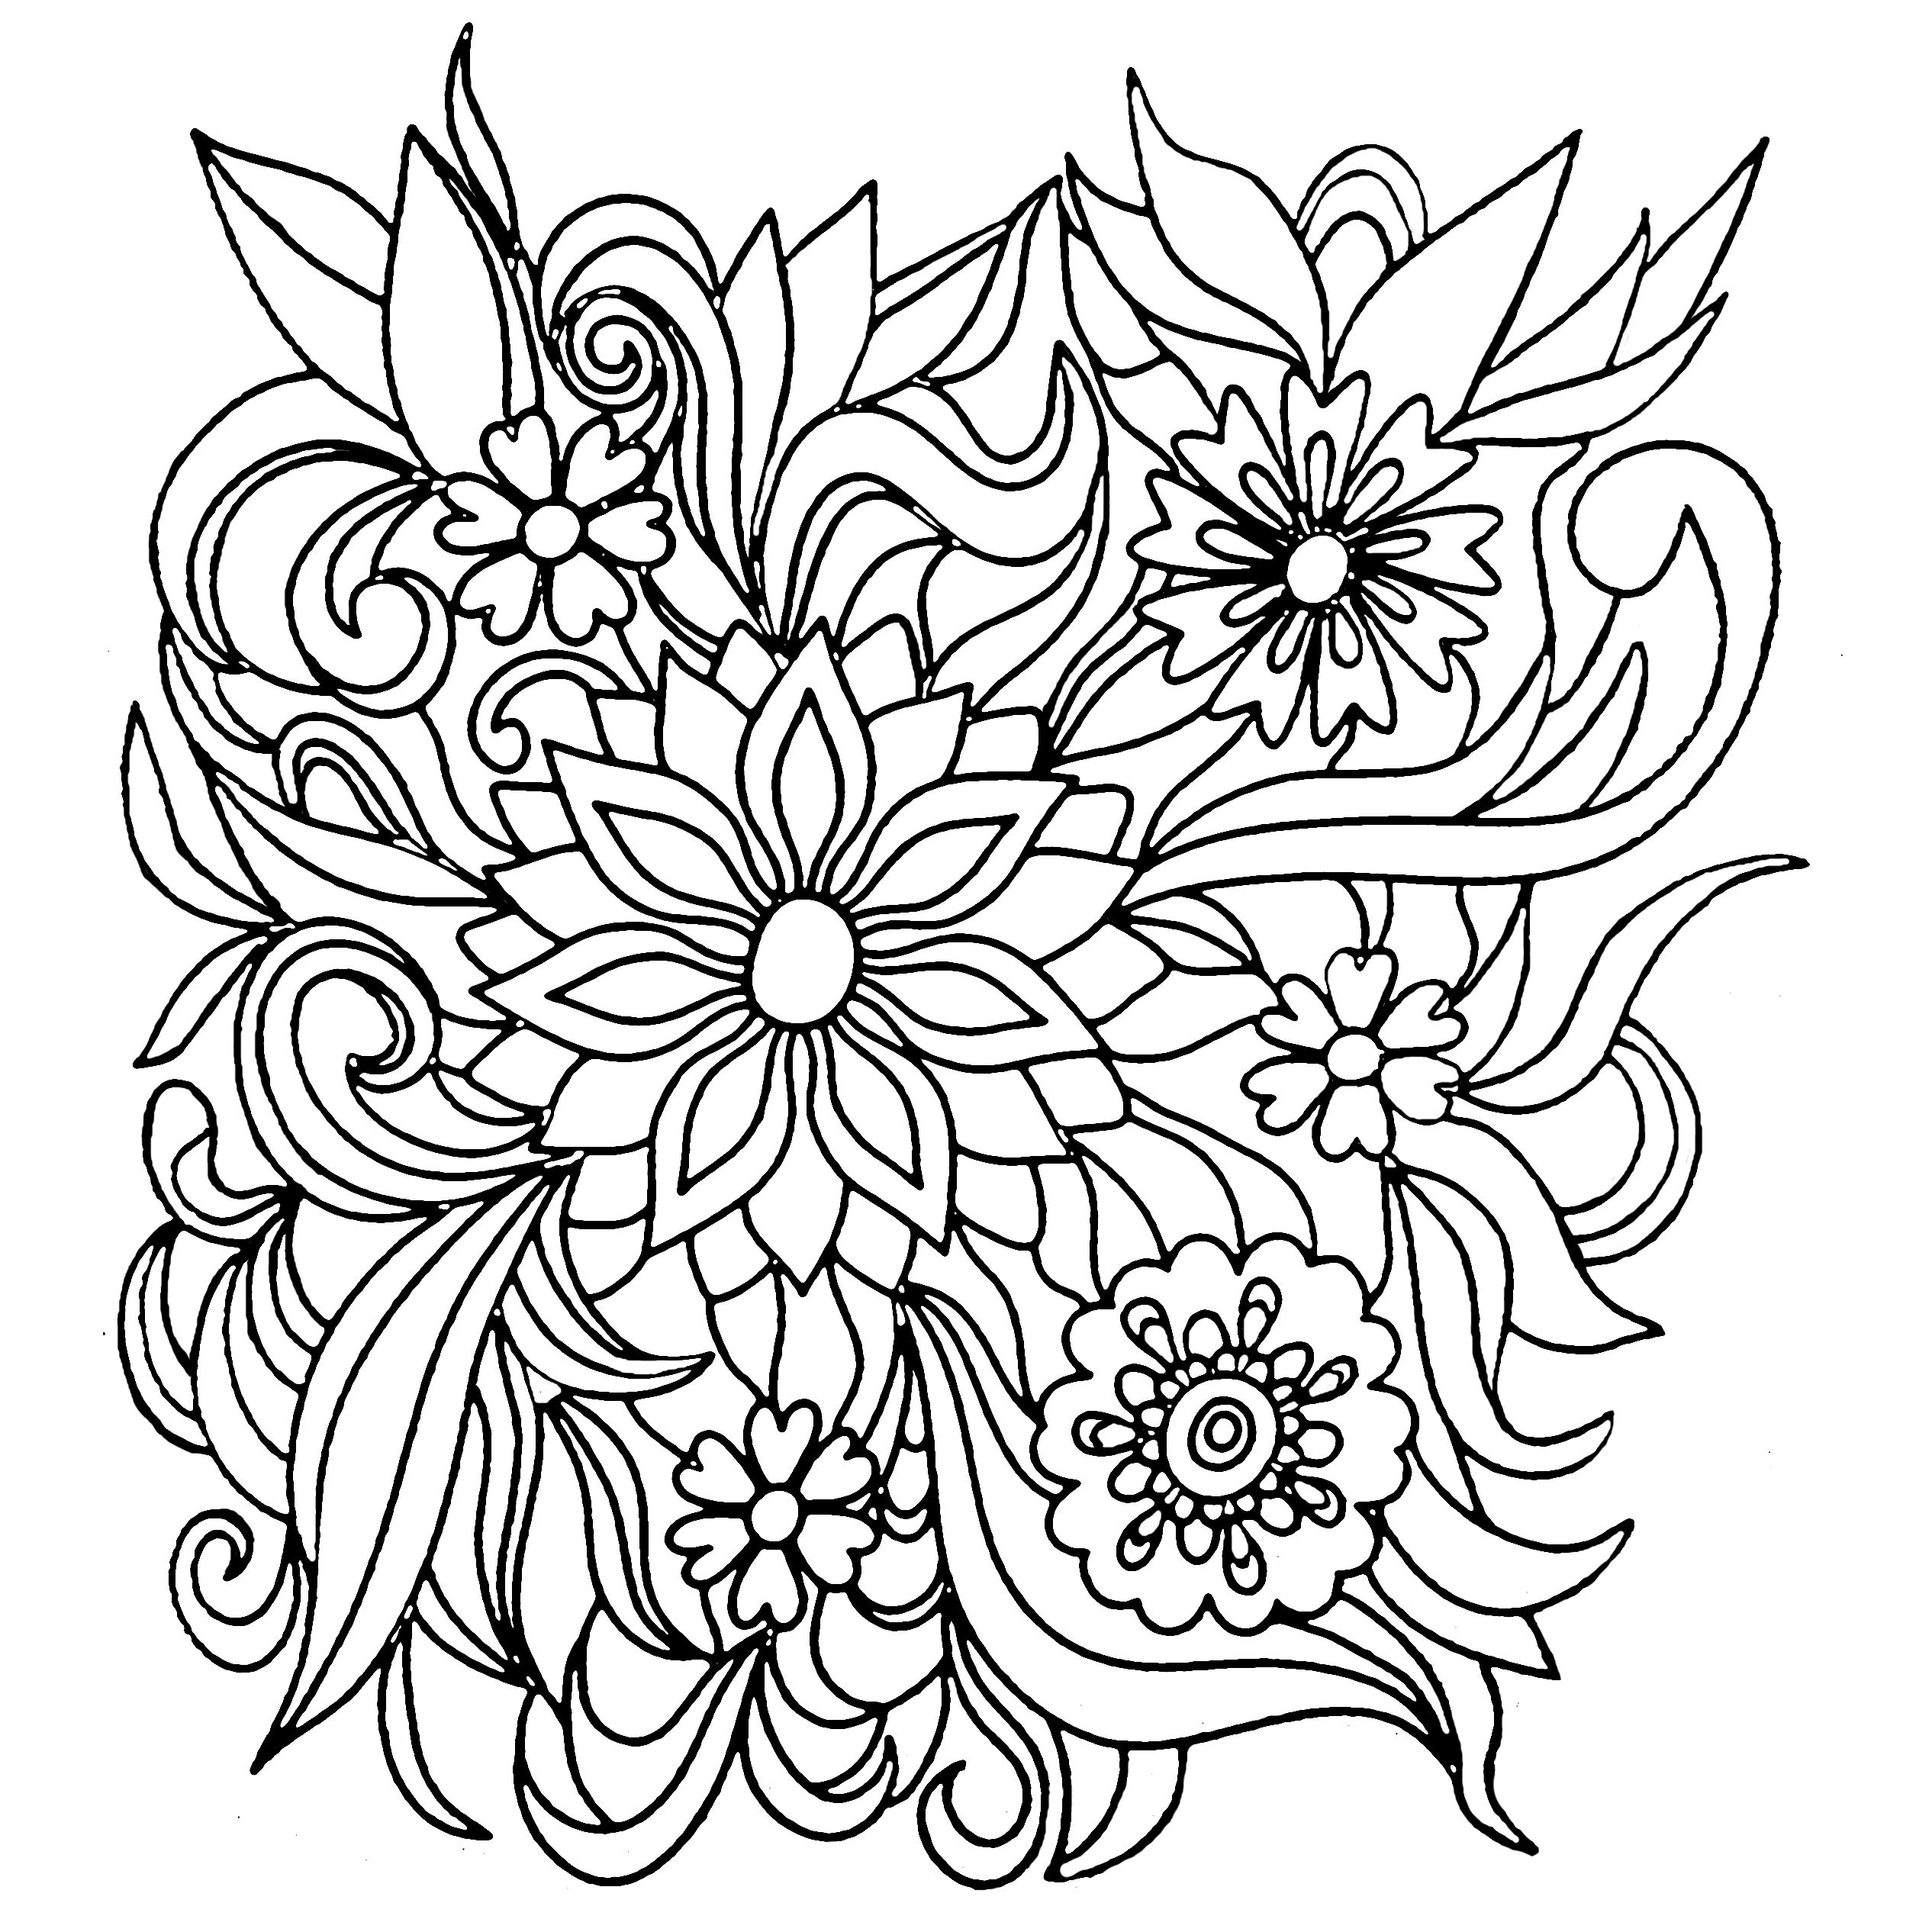 Colors of Nature Adult Colouring Book Flowers Coloring